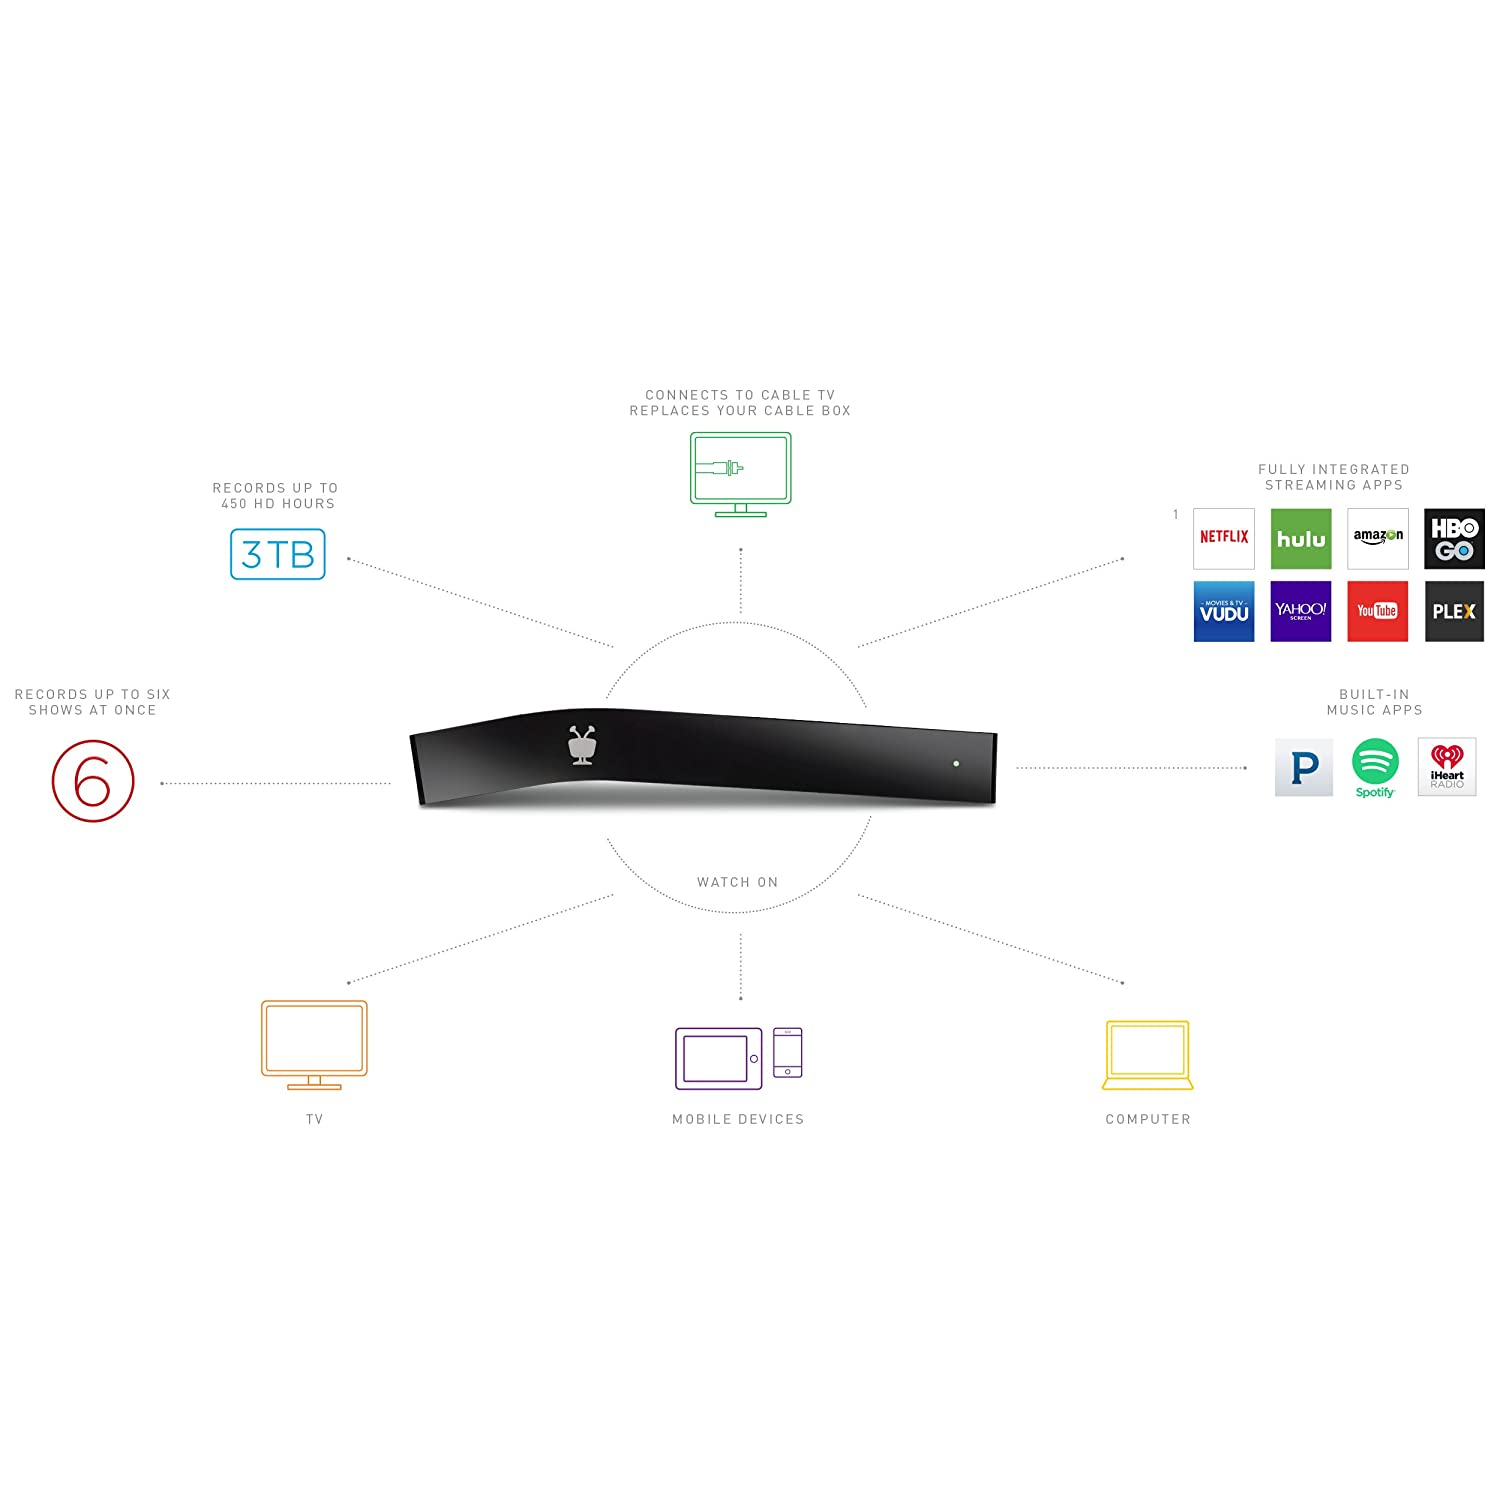 Tivo Bolt 3 Tb Dvr Digital Video Recorder And Netflix Wiring Diagram Streaming Media Player 4k Uhd Compatible Works With Cable Electronics